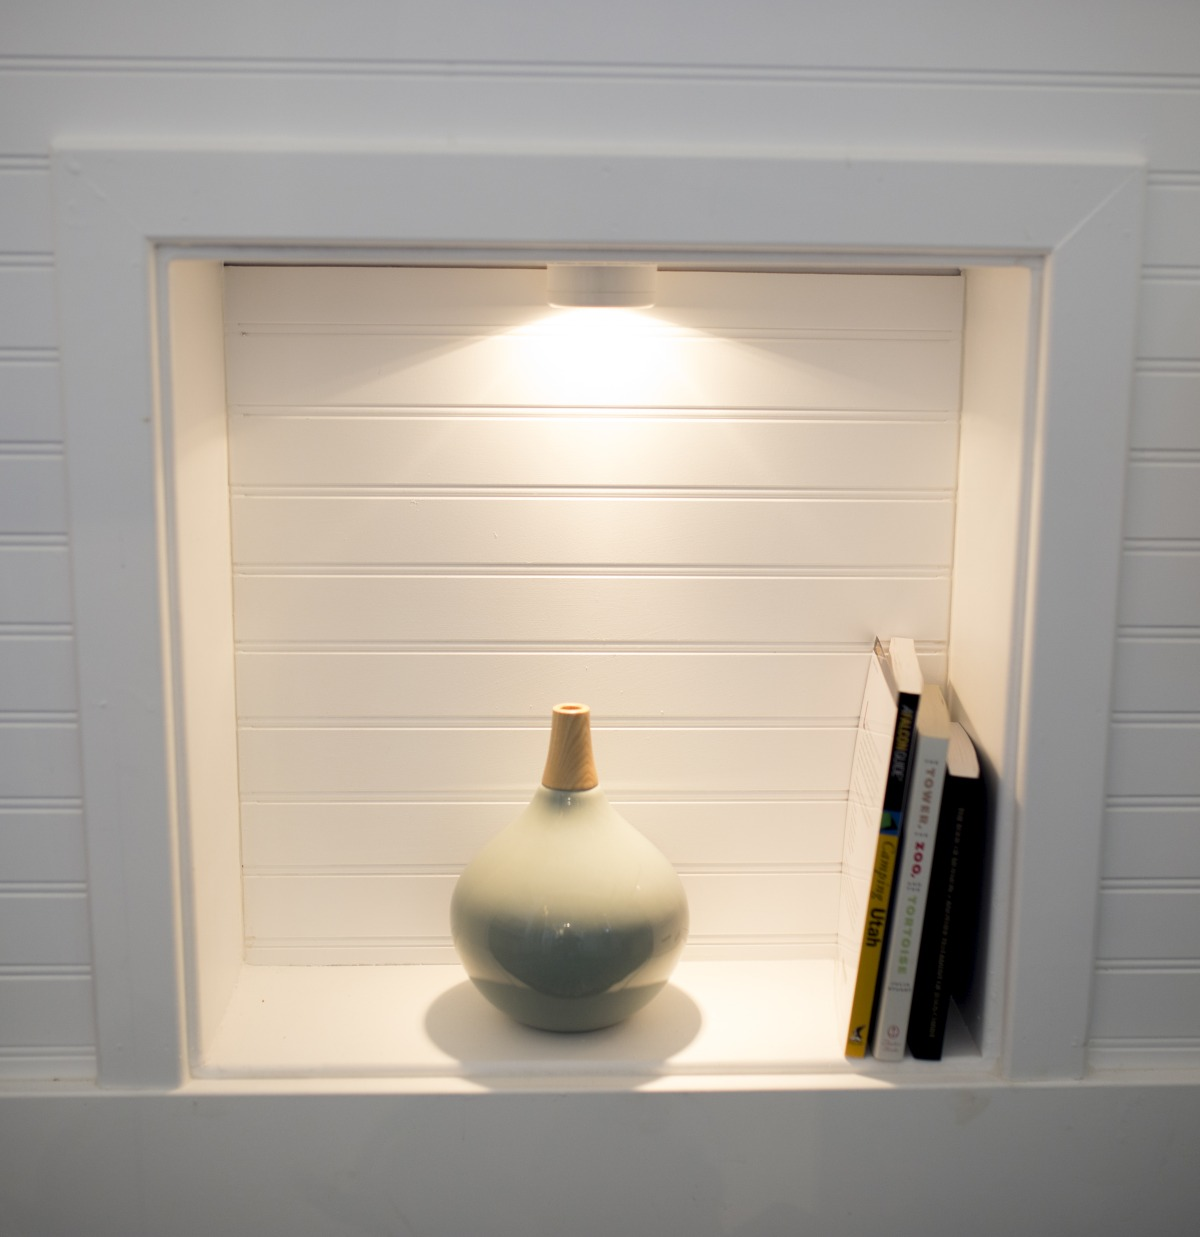 The area underneath the sink can be used as a display nook for a few decorations